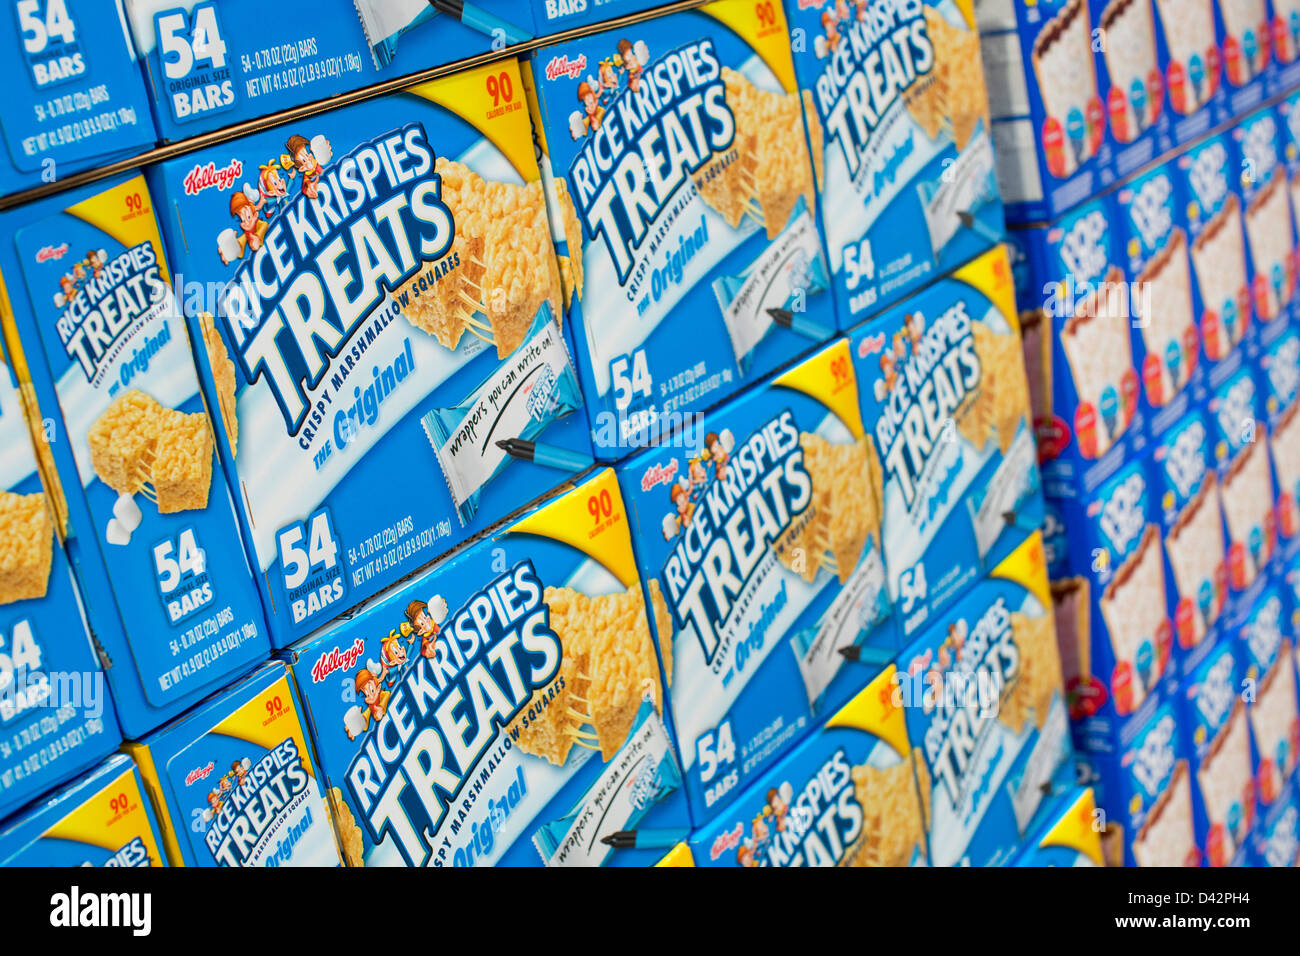 Rice Krispies and Pop-Tarts on display at a Costco Wholesale Warehouse Club. - Stock Image